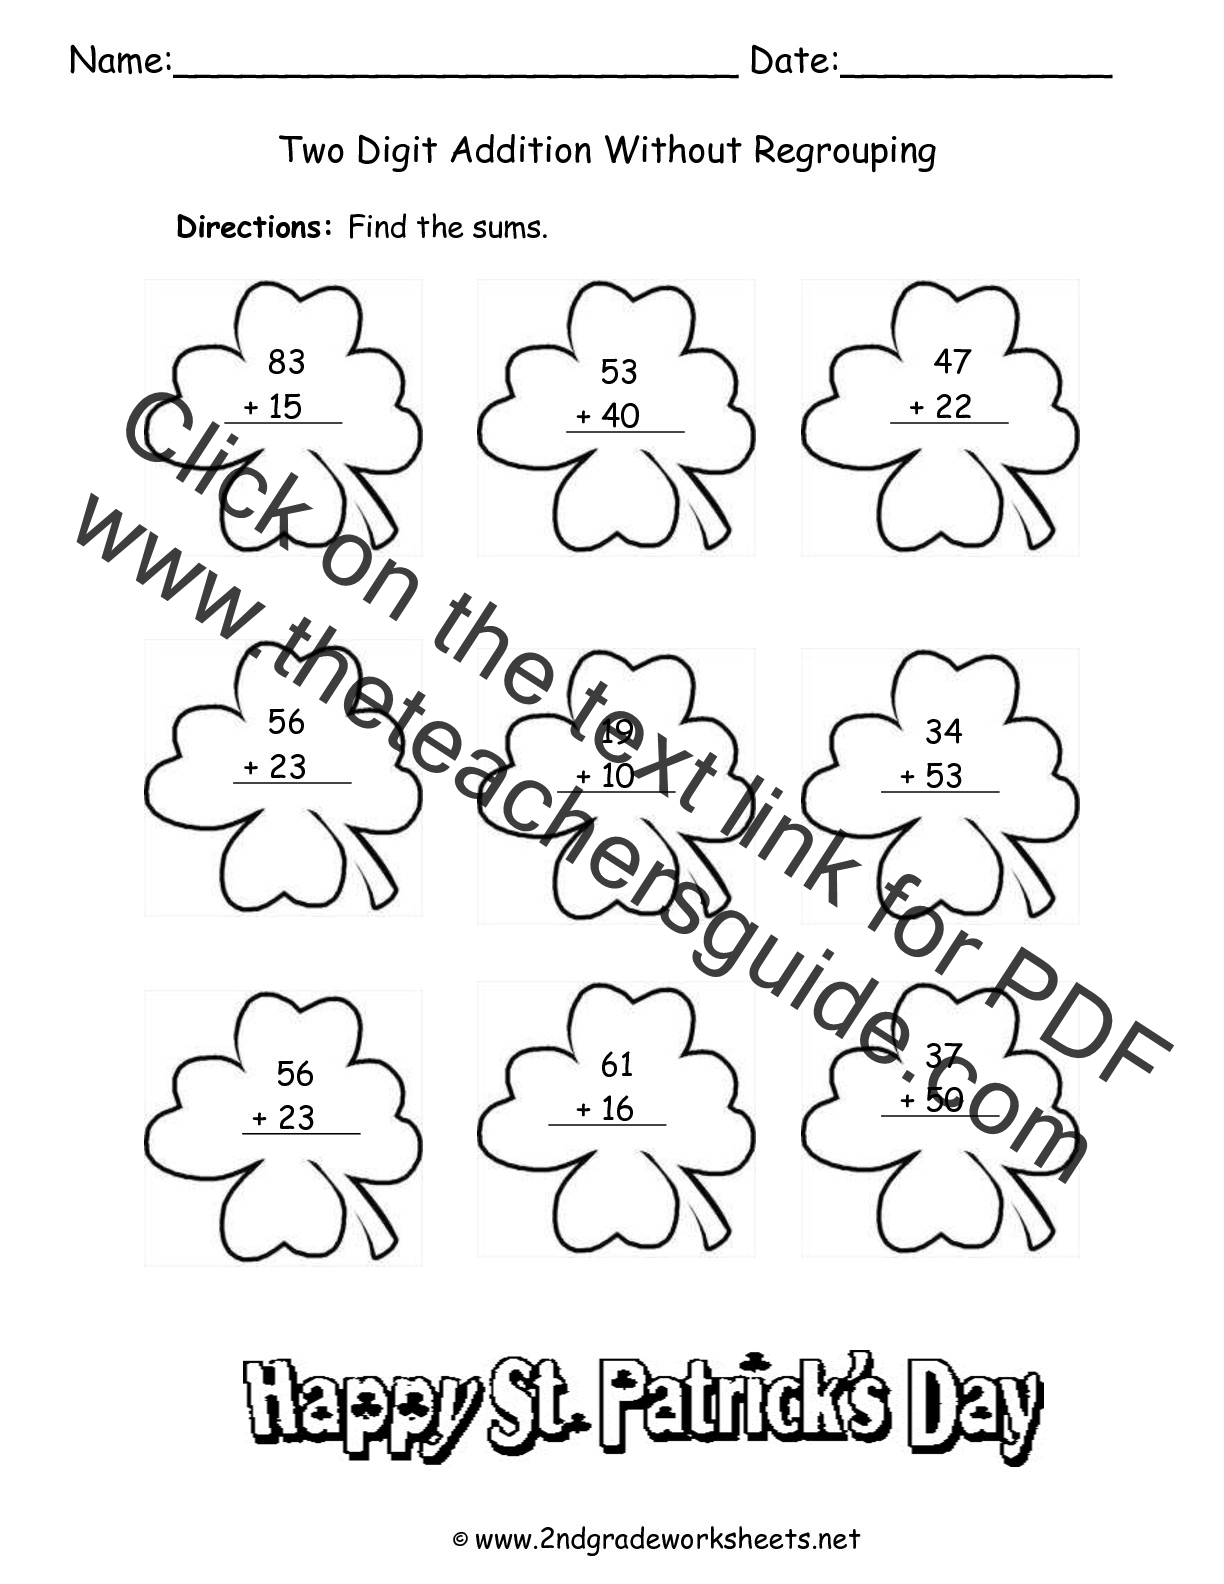 St Patricks Day Printouts and Worksheets – Two Digit Addition Worksheets with Regrouping